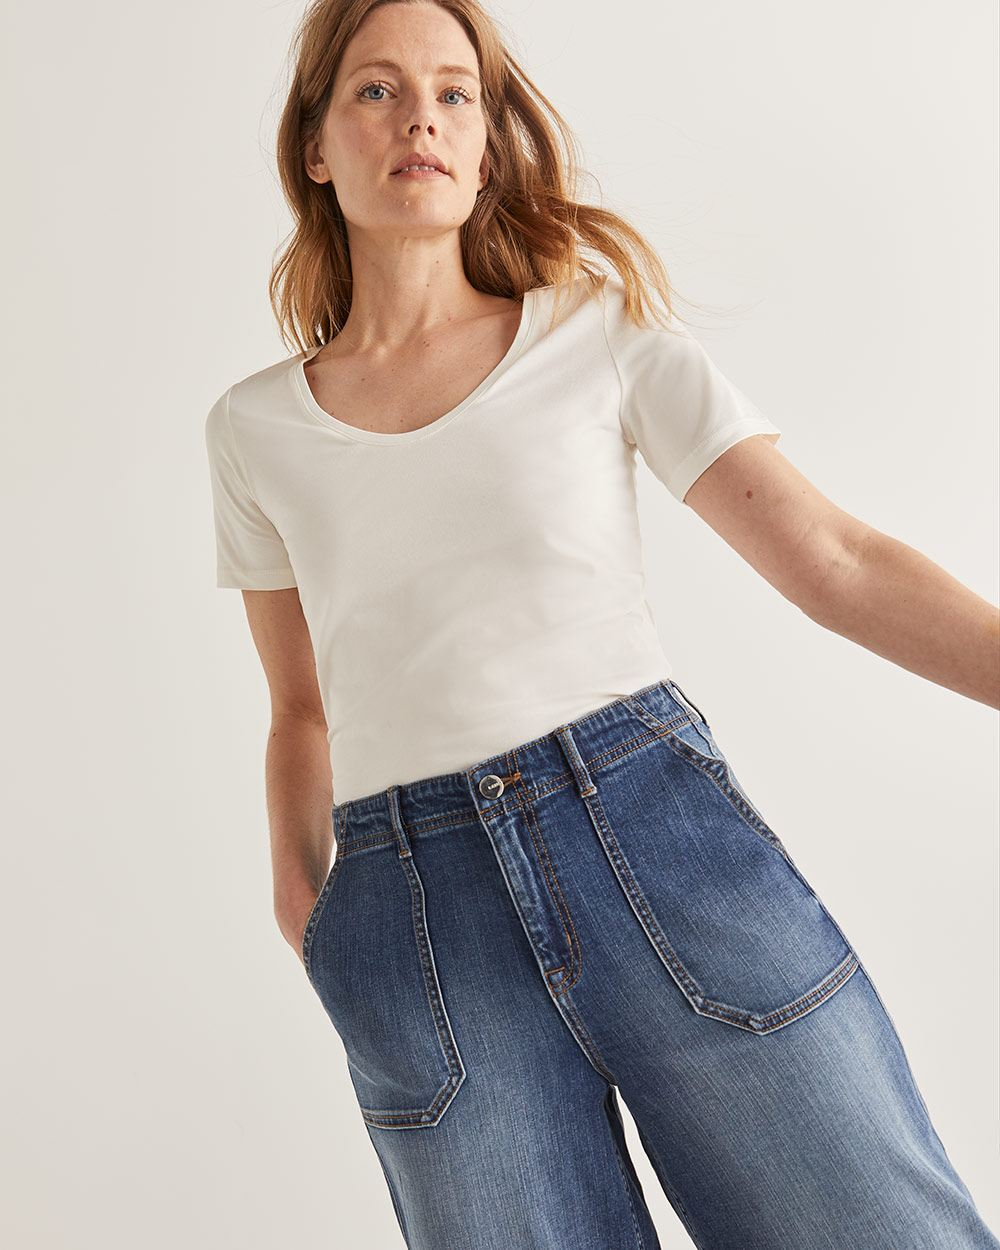 Willow & Thread Pima Cotton White Tee